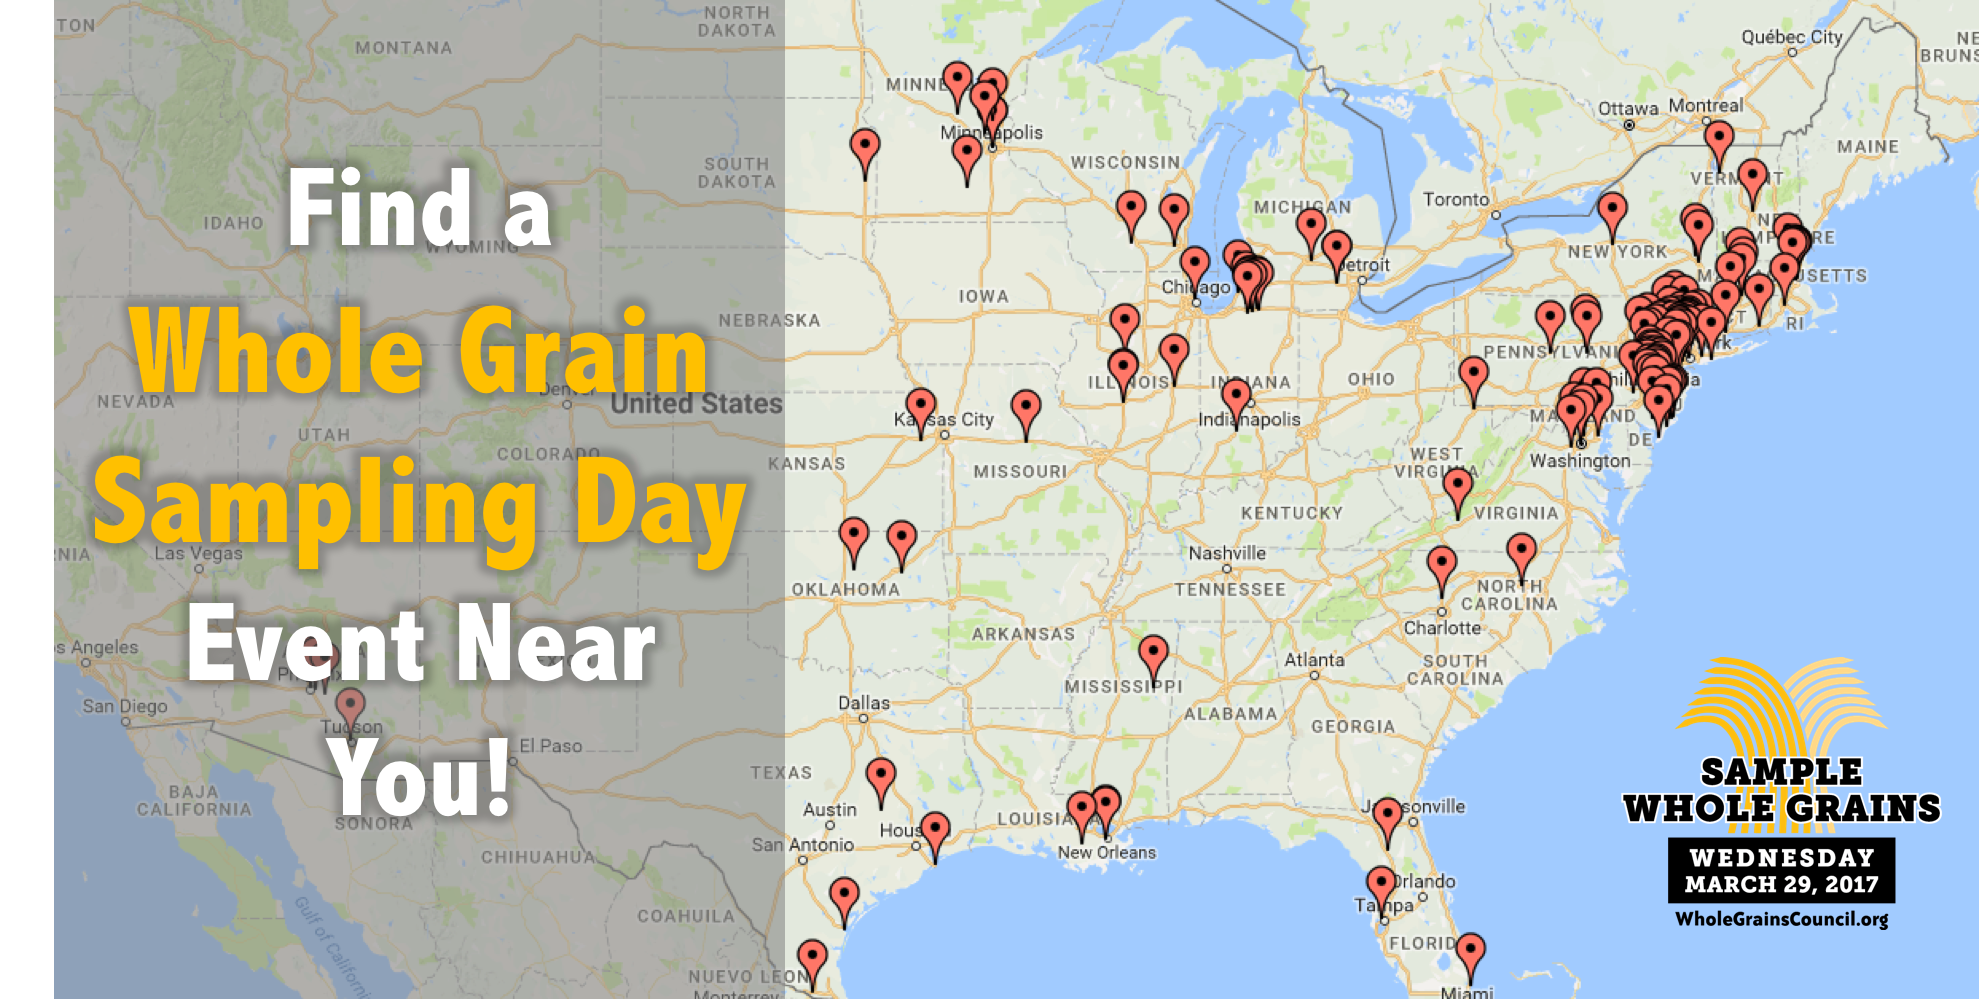 map of Whole Grain Sampling Day participants